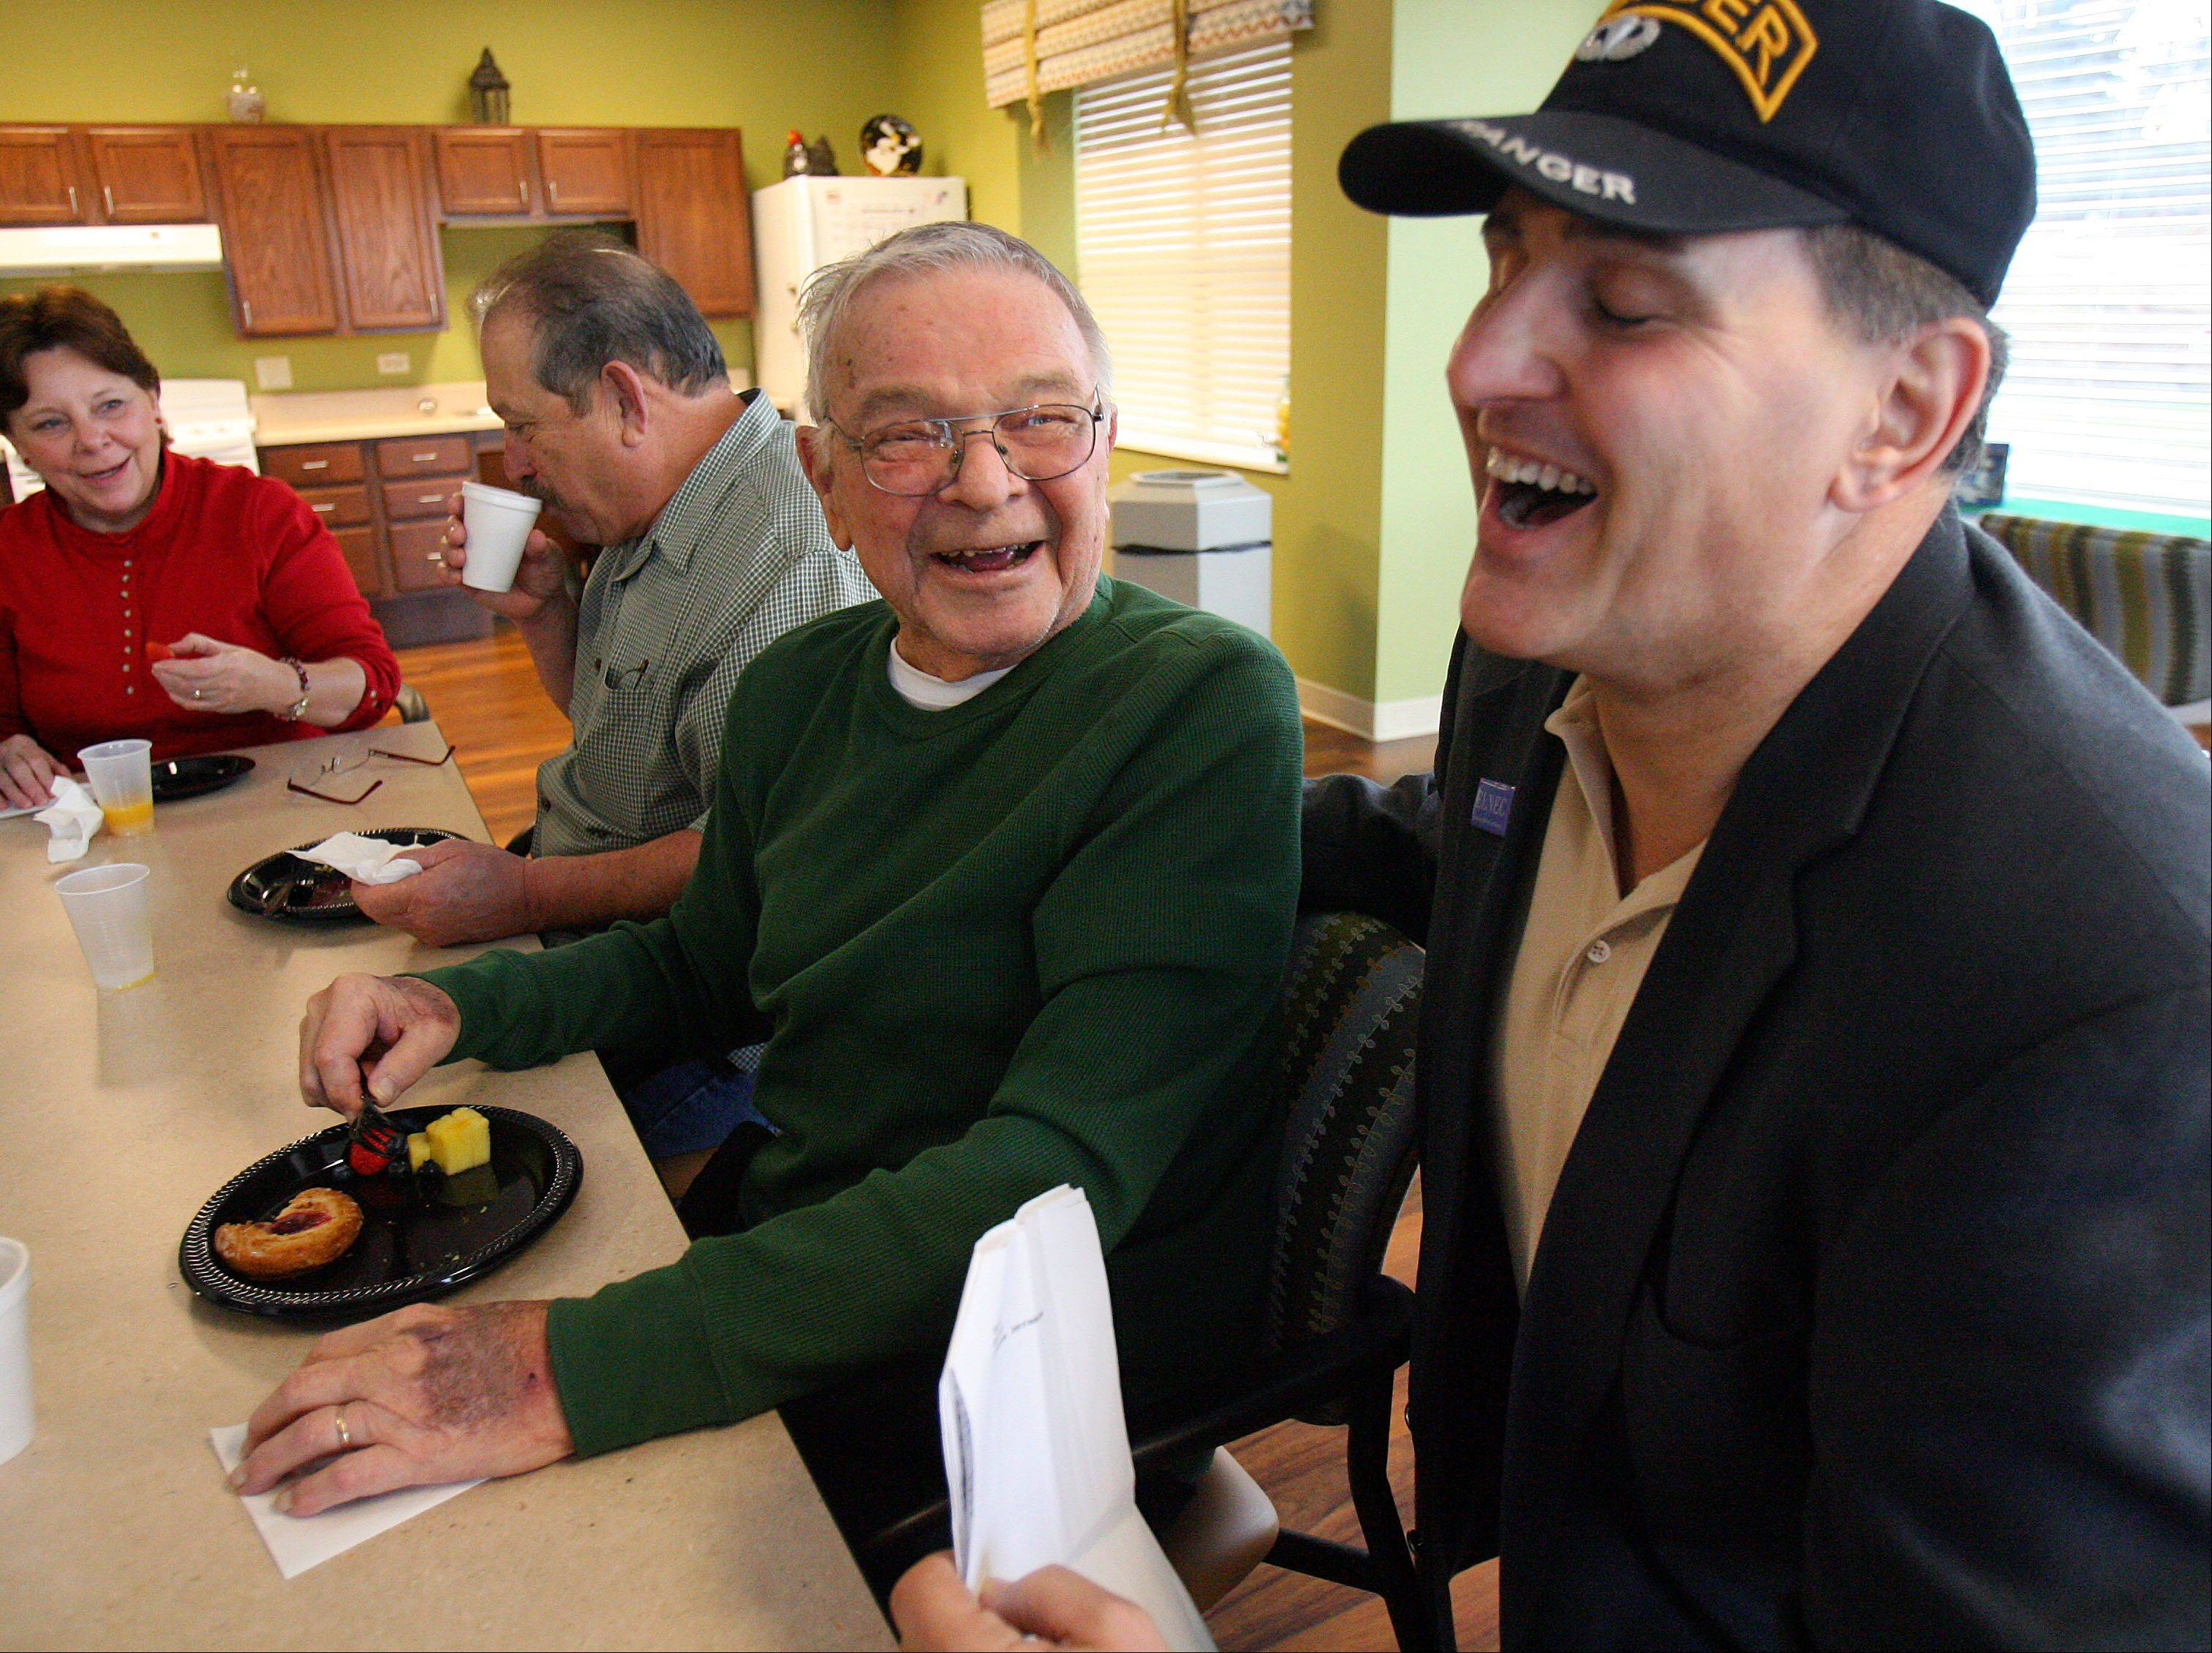 World War II veteran and resident of Oak Hill Supportive Living Richard Siver, left, has a laugh with presenter Andy Balafas of Vitas Innovative Hospice Care during a Pearl Harbor Day event to honor area veterans Friday in Round Lake Beach.